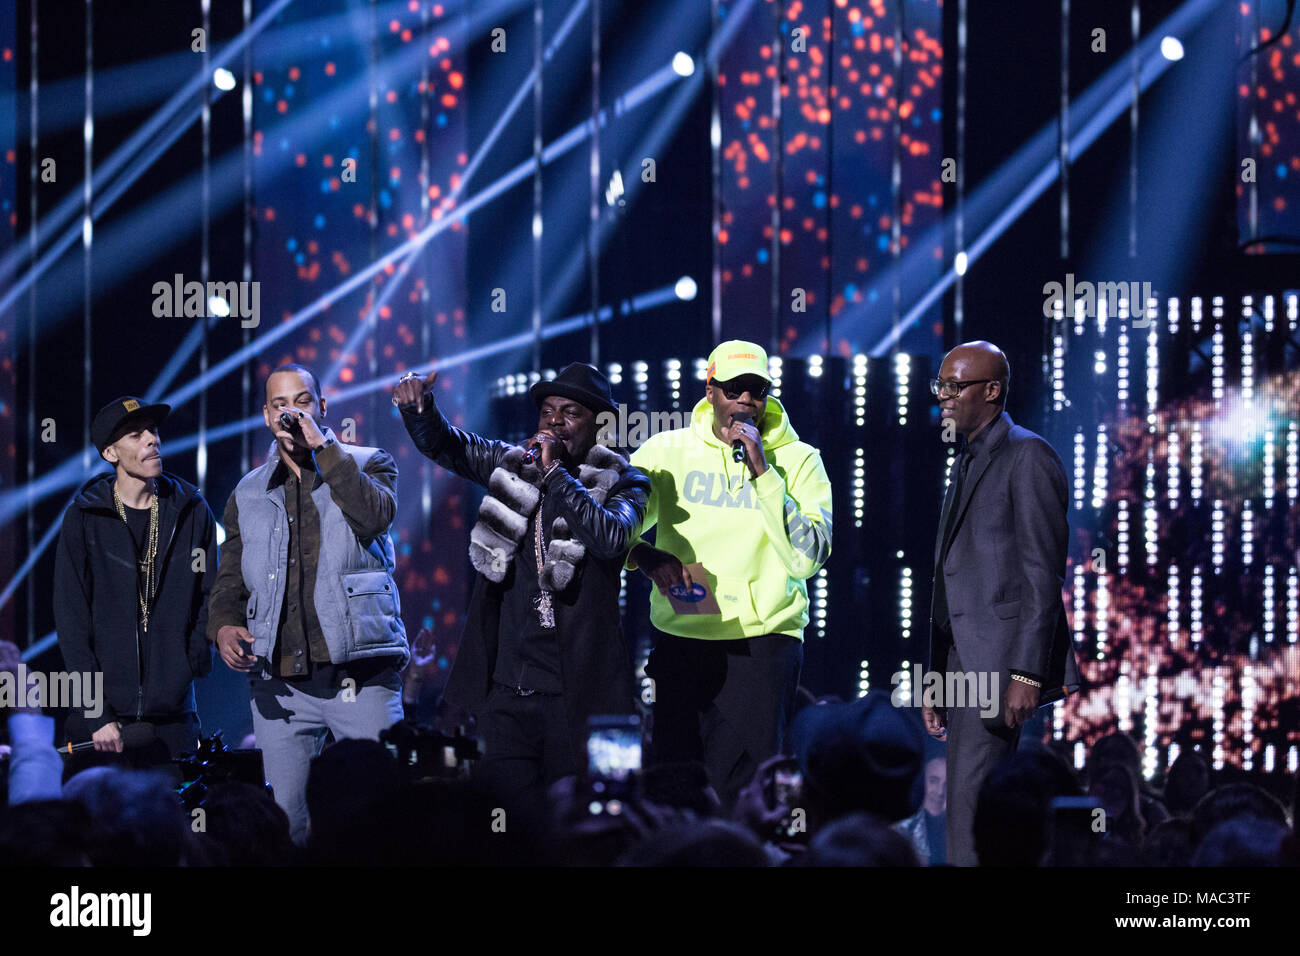 Vancouver, CANADA. 26th March, 2018. The Northern Touch All-Stars presenting and performing at the 2018 Juno Awards in Vancouver. Credit: Bobby Singh/ Stock Photo